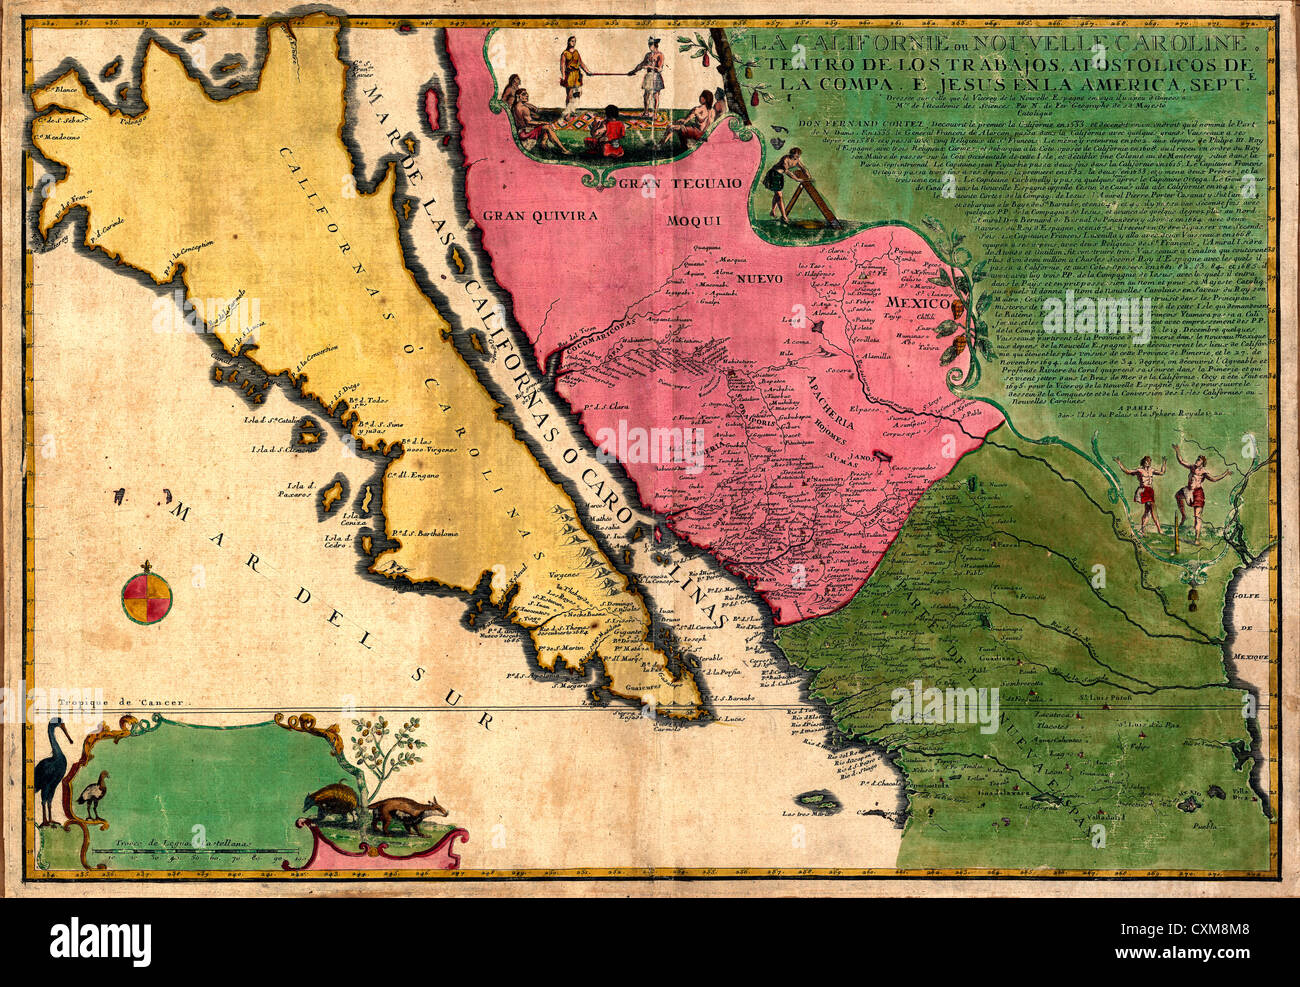 California or New Carolina - vintage map, circa 1720 - Stock Image